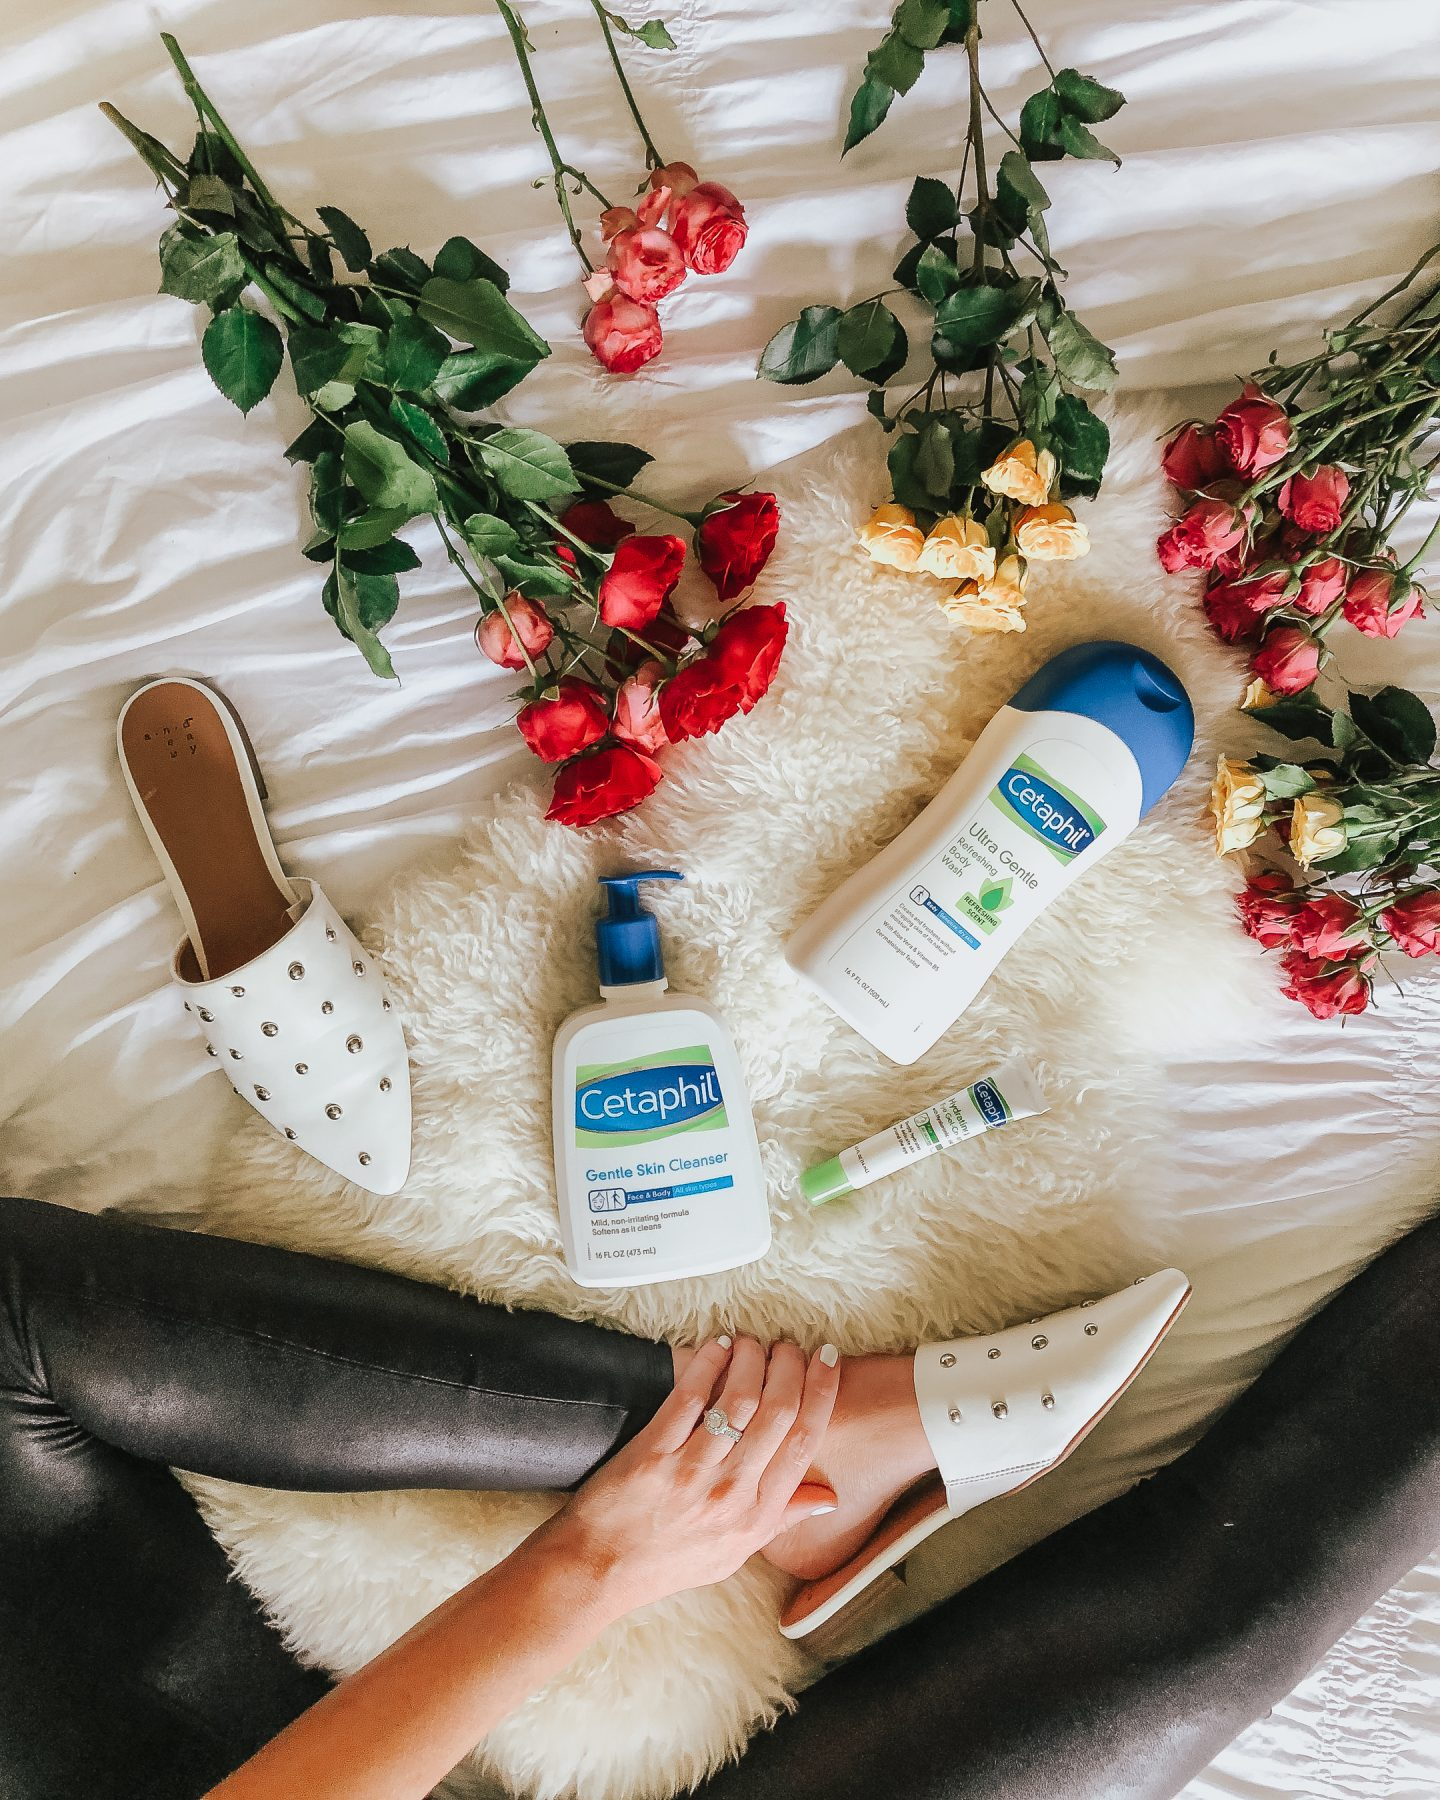 cetaphil self care, holy grail Finding Ways to Incorporate Me Time Into A Busy Day, cetaphil self care, holy grail skin care product that I cannot live without, anti aging skincare, skincare for the whole familyskin care product that I cannot live without, anti aging skincare, skincare for the whole family